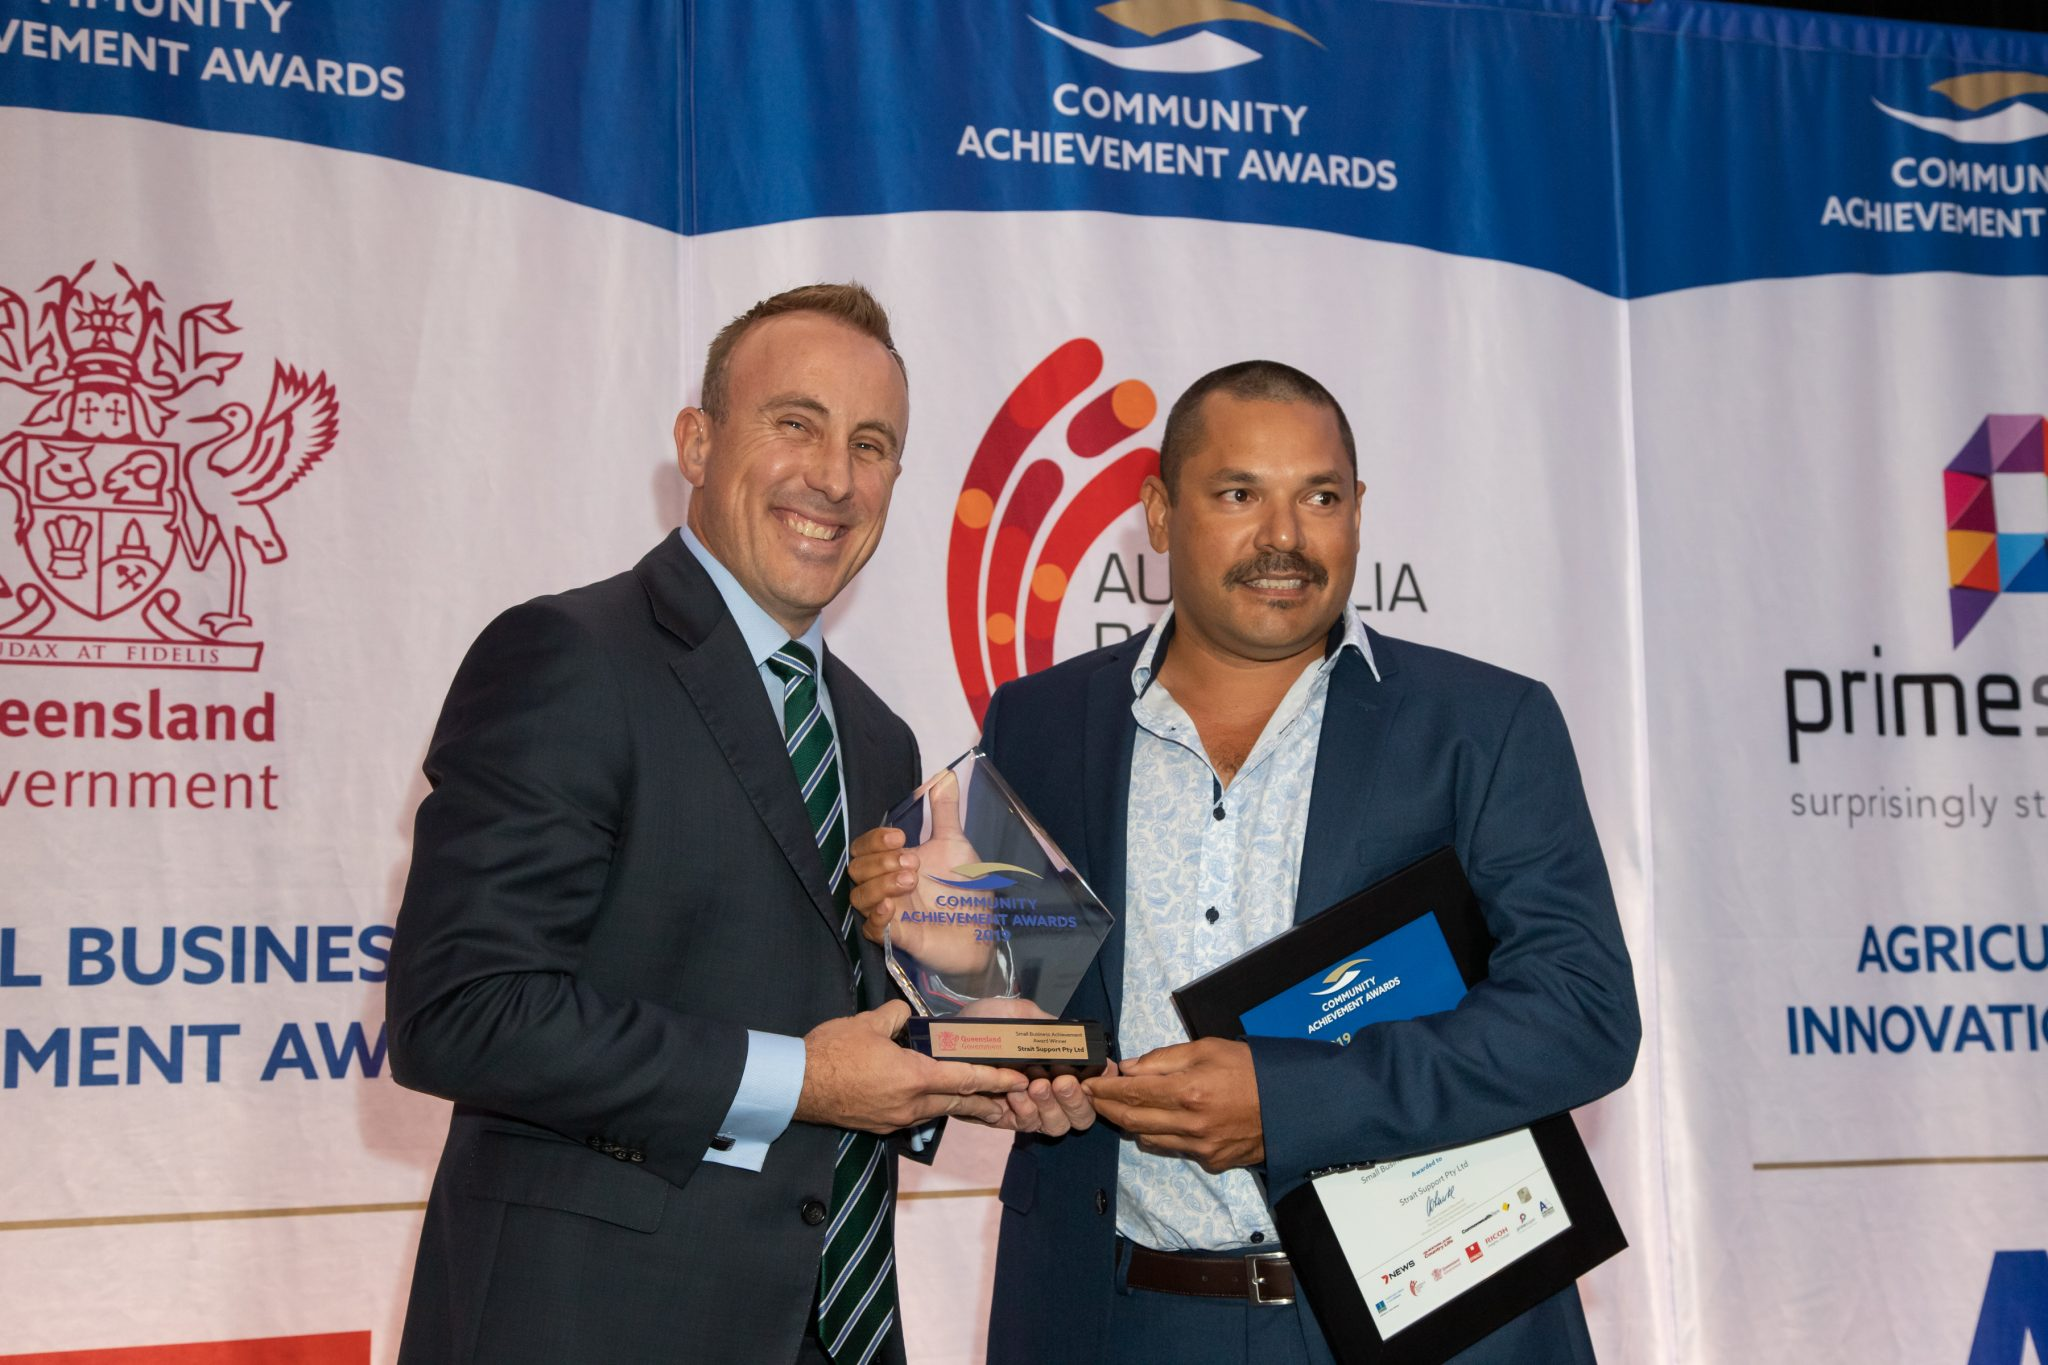 Strait Support wins small business achievement award!